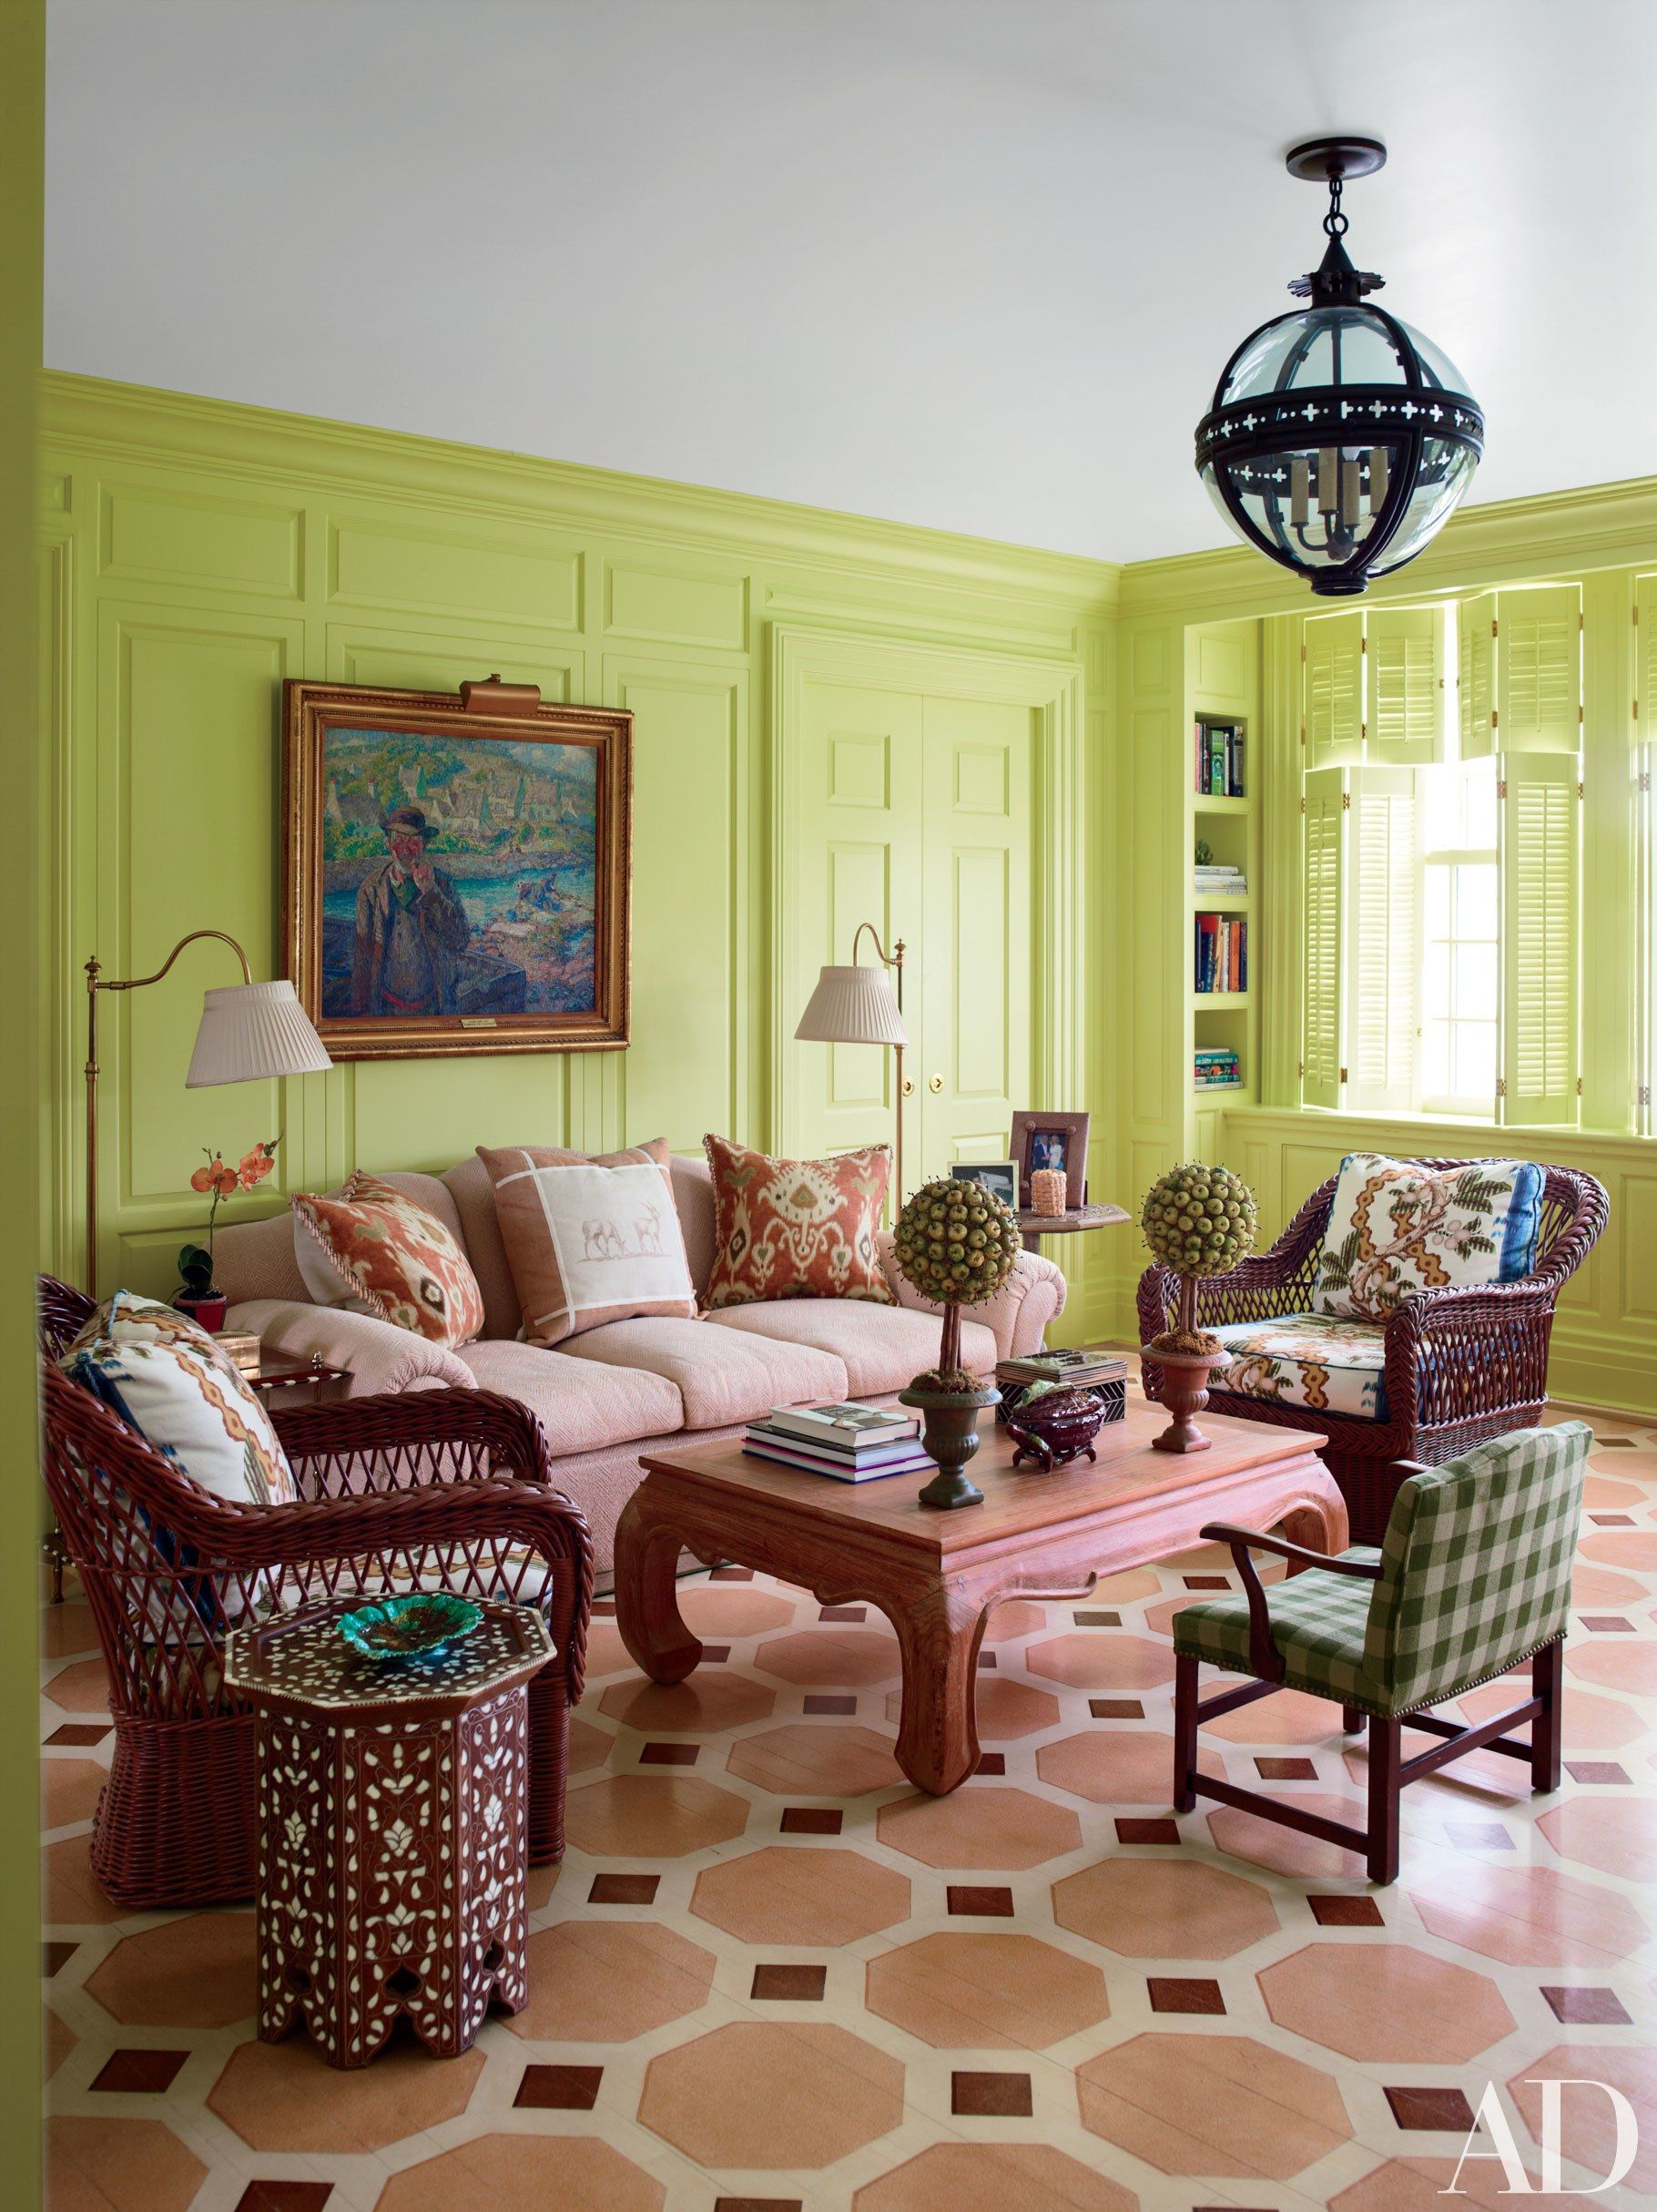 24 Elegant Art-Centric Rooms from the AD Archives Photos | Architectural Digest